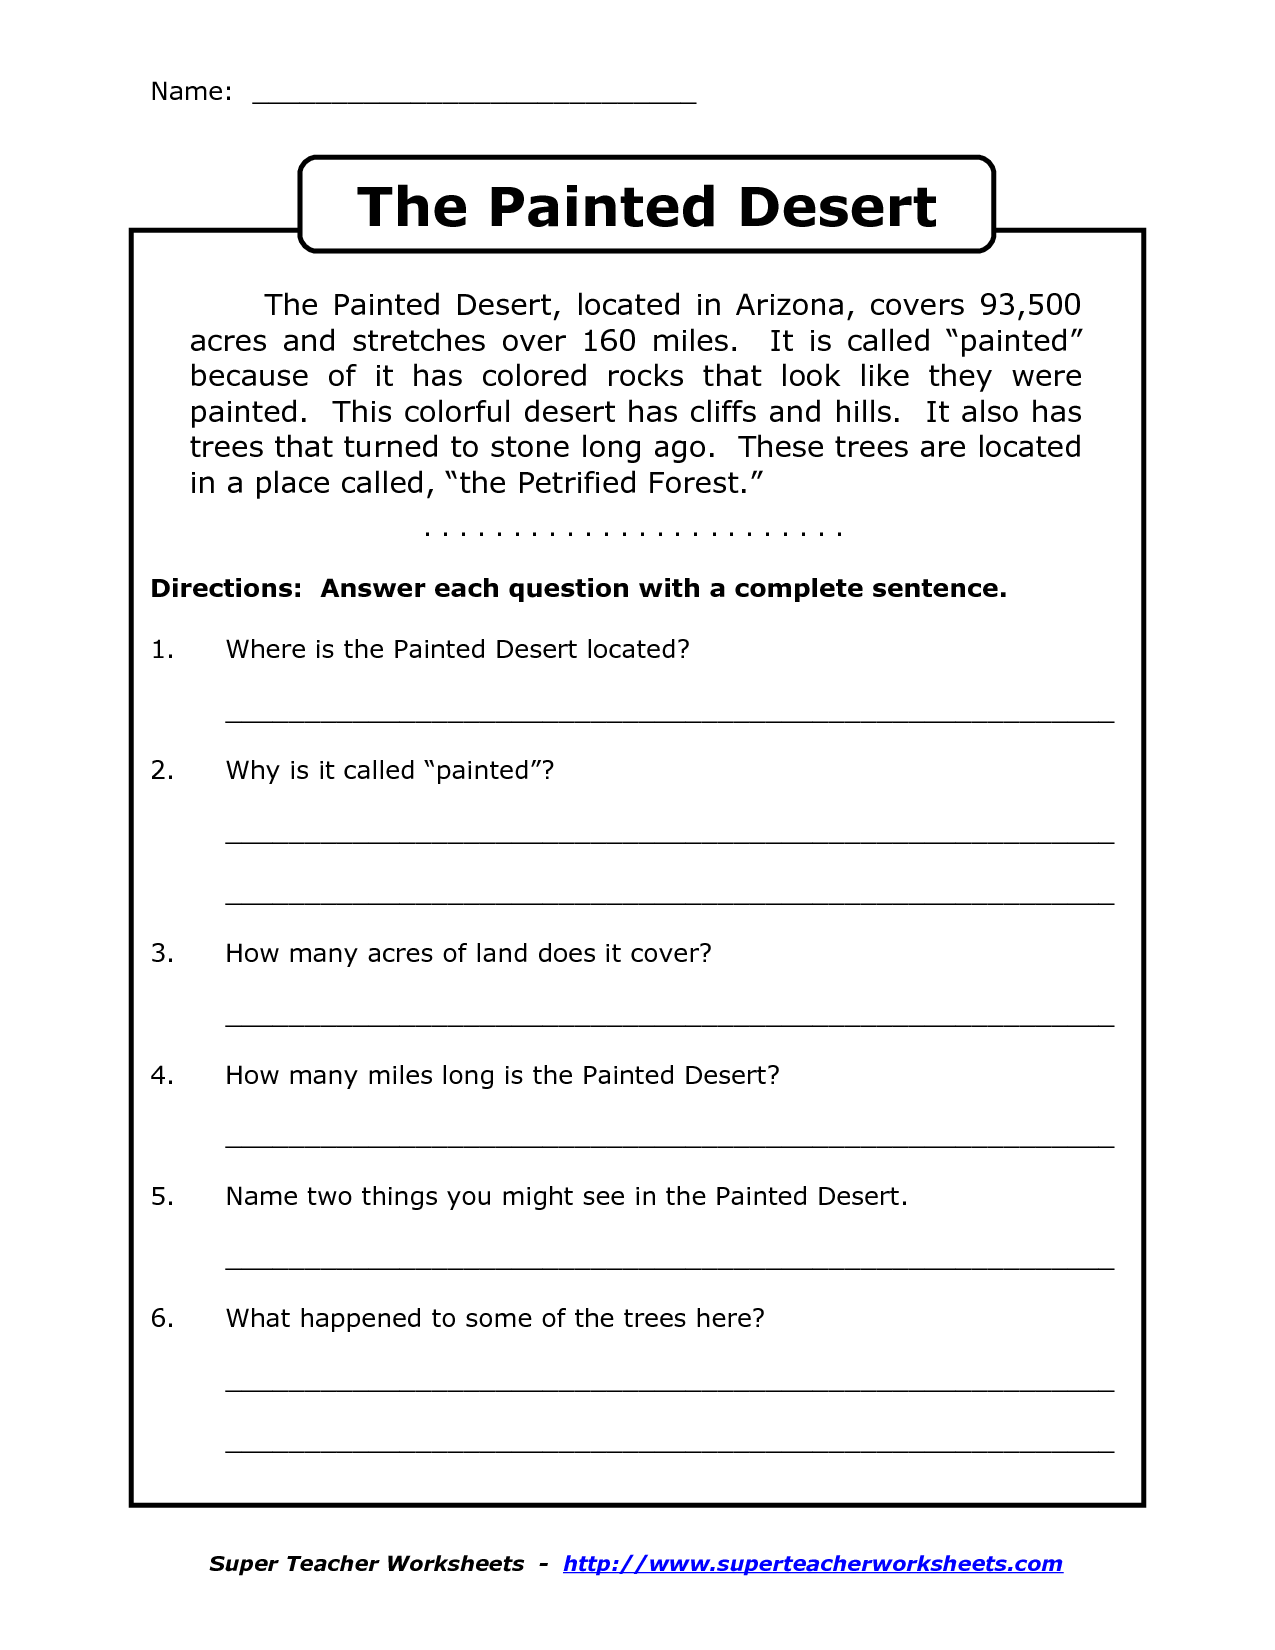 Worksheet Comprehension Passages For Grade 2 reading worksheets for 4th grade comprehension 3 name the painted desert